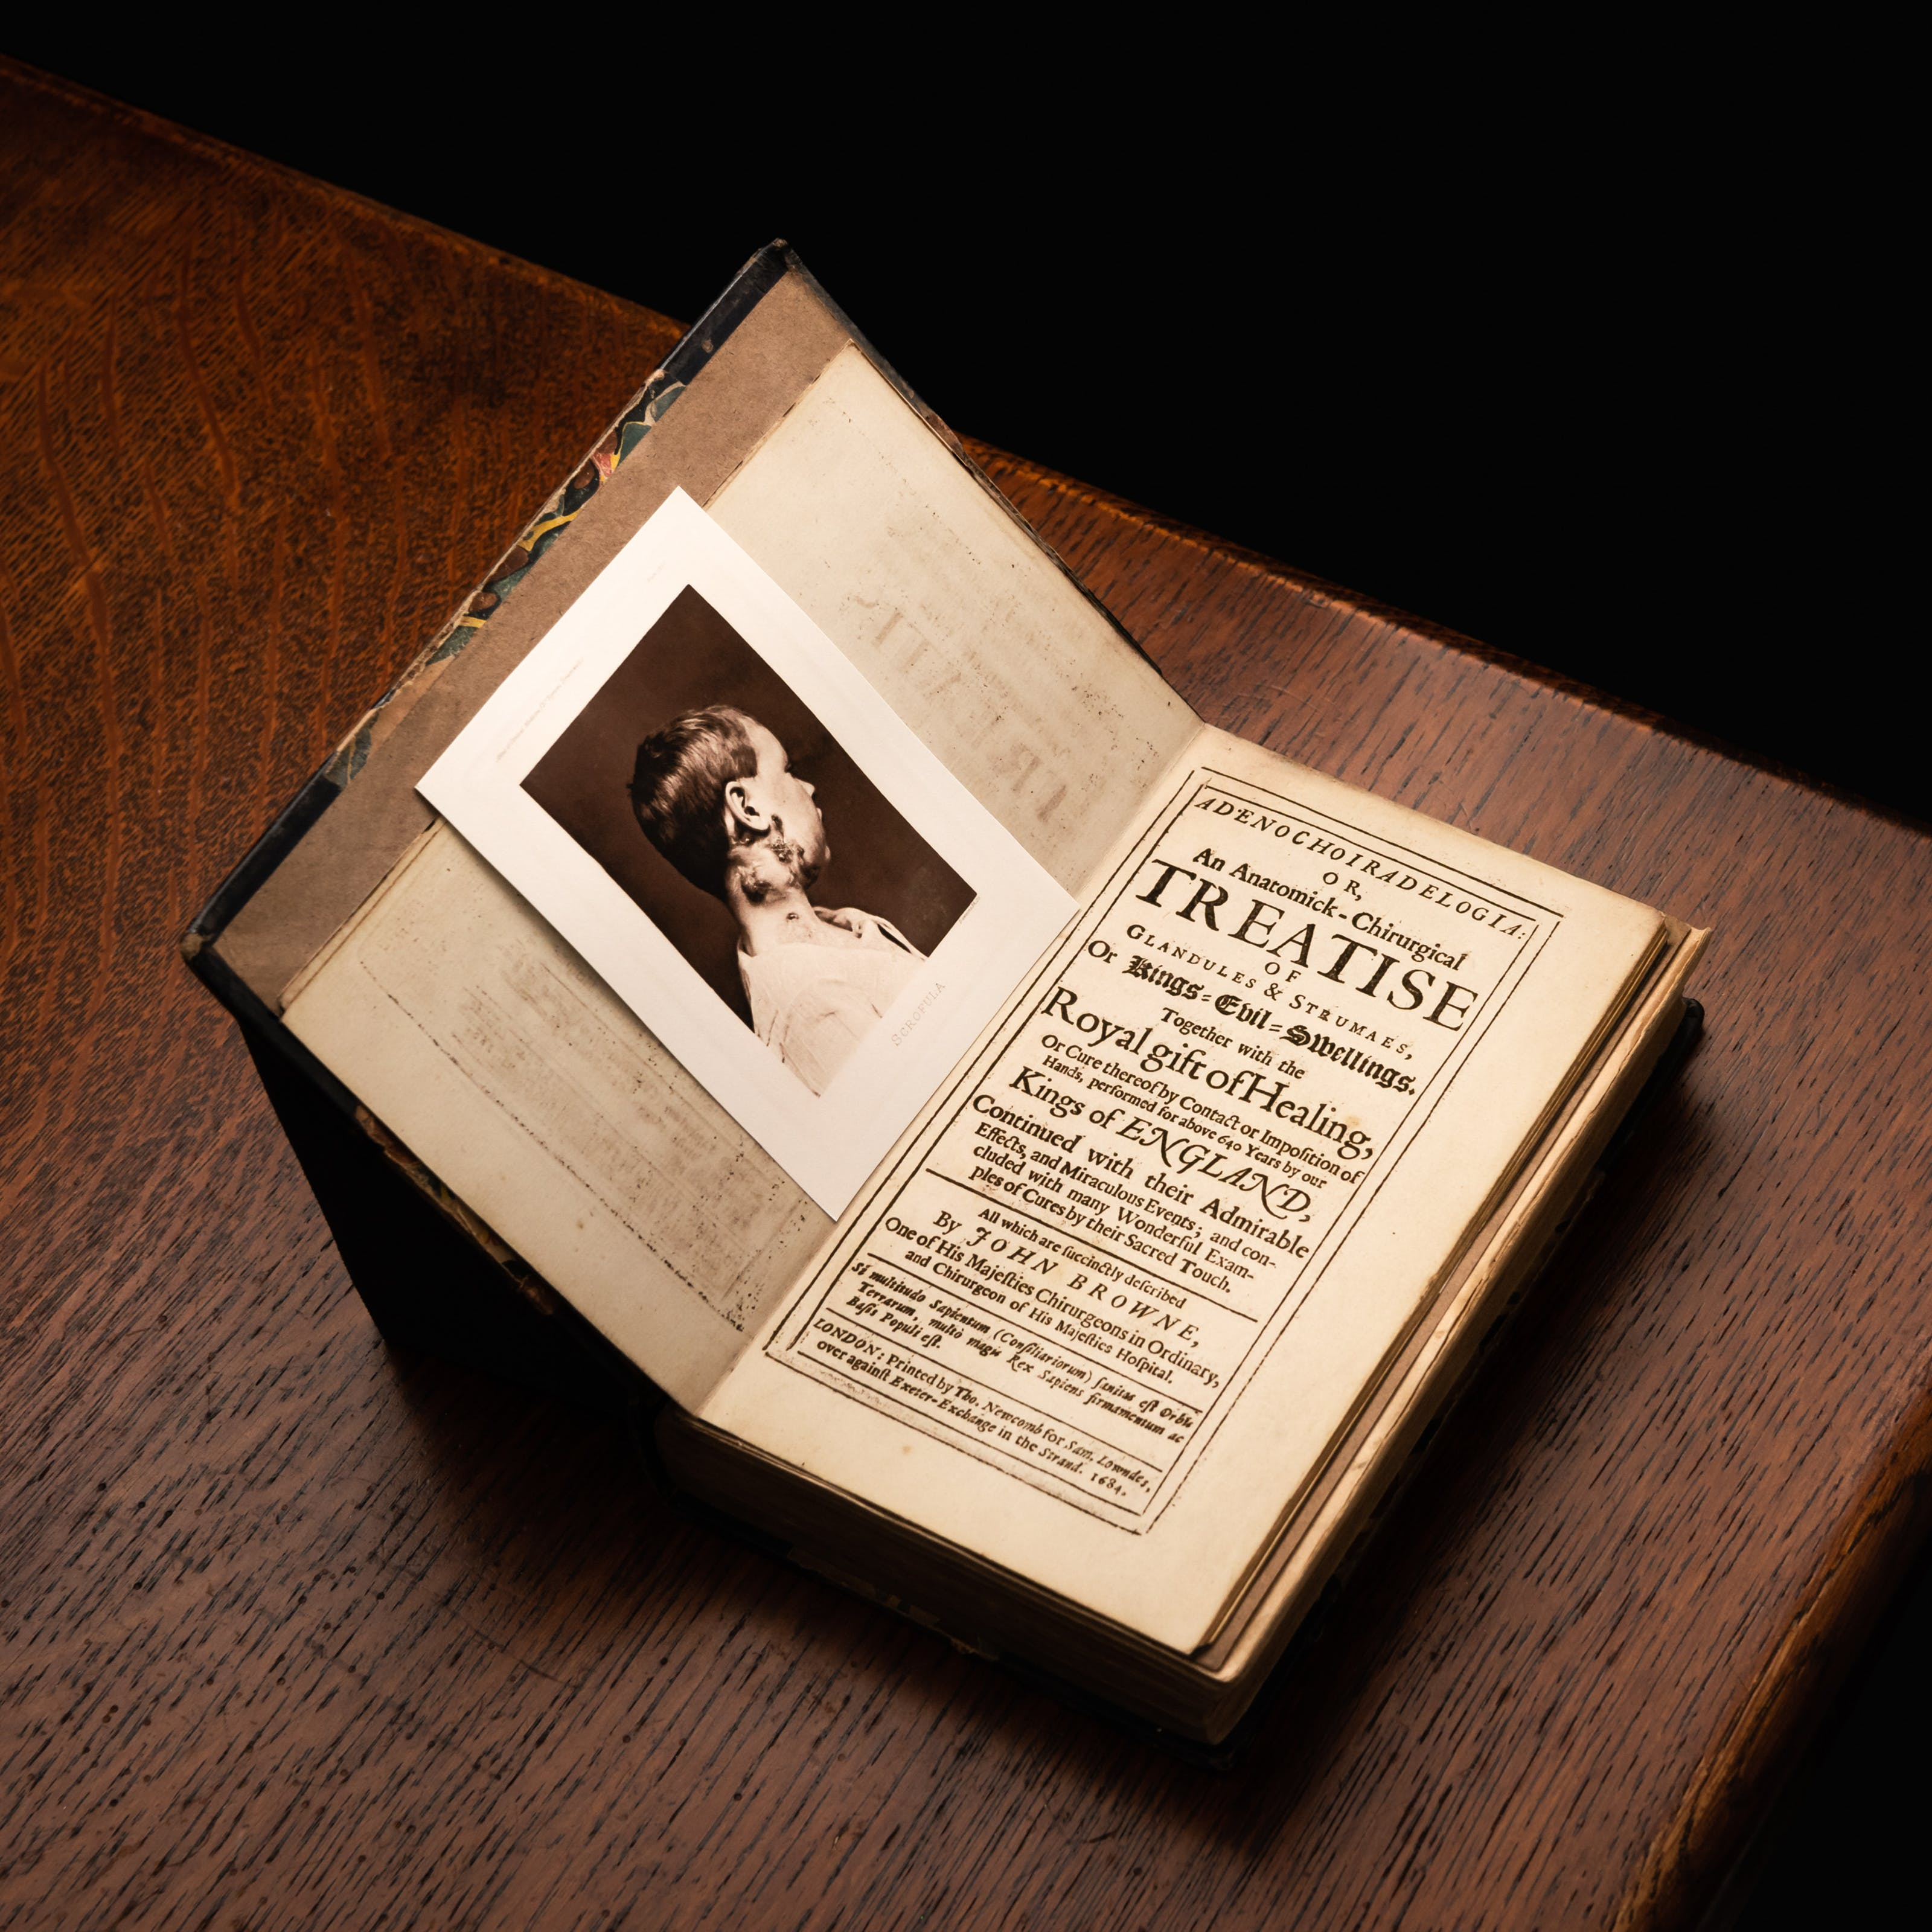 A photograph of a printed book positioned on the corner of a dark wooden table. The book is open at the title page, which reads in part Treatise of Glandules and Strumaes or Kings Evil Swellings. Positioned on the opposite page is photograph of a young boy viewed in profile, running up his neck to below his right ear are darkened swellings.